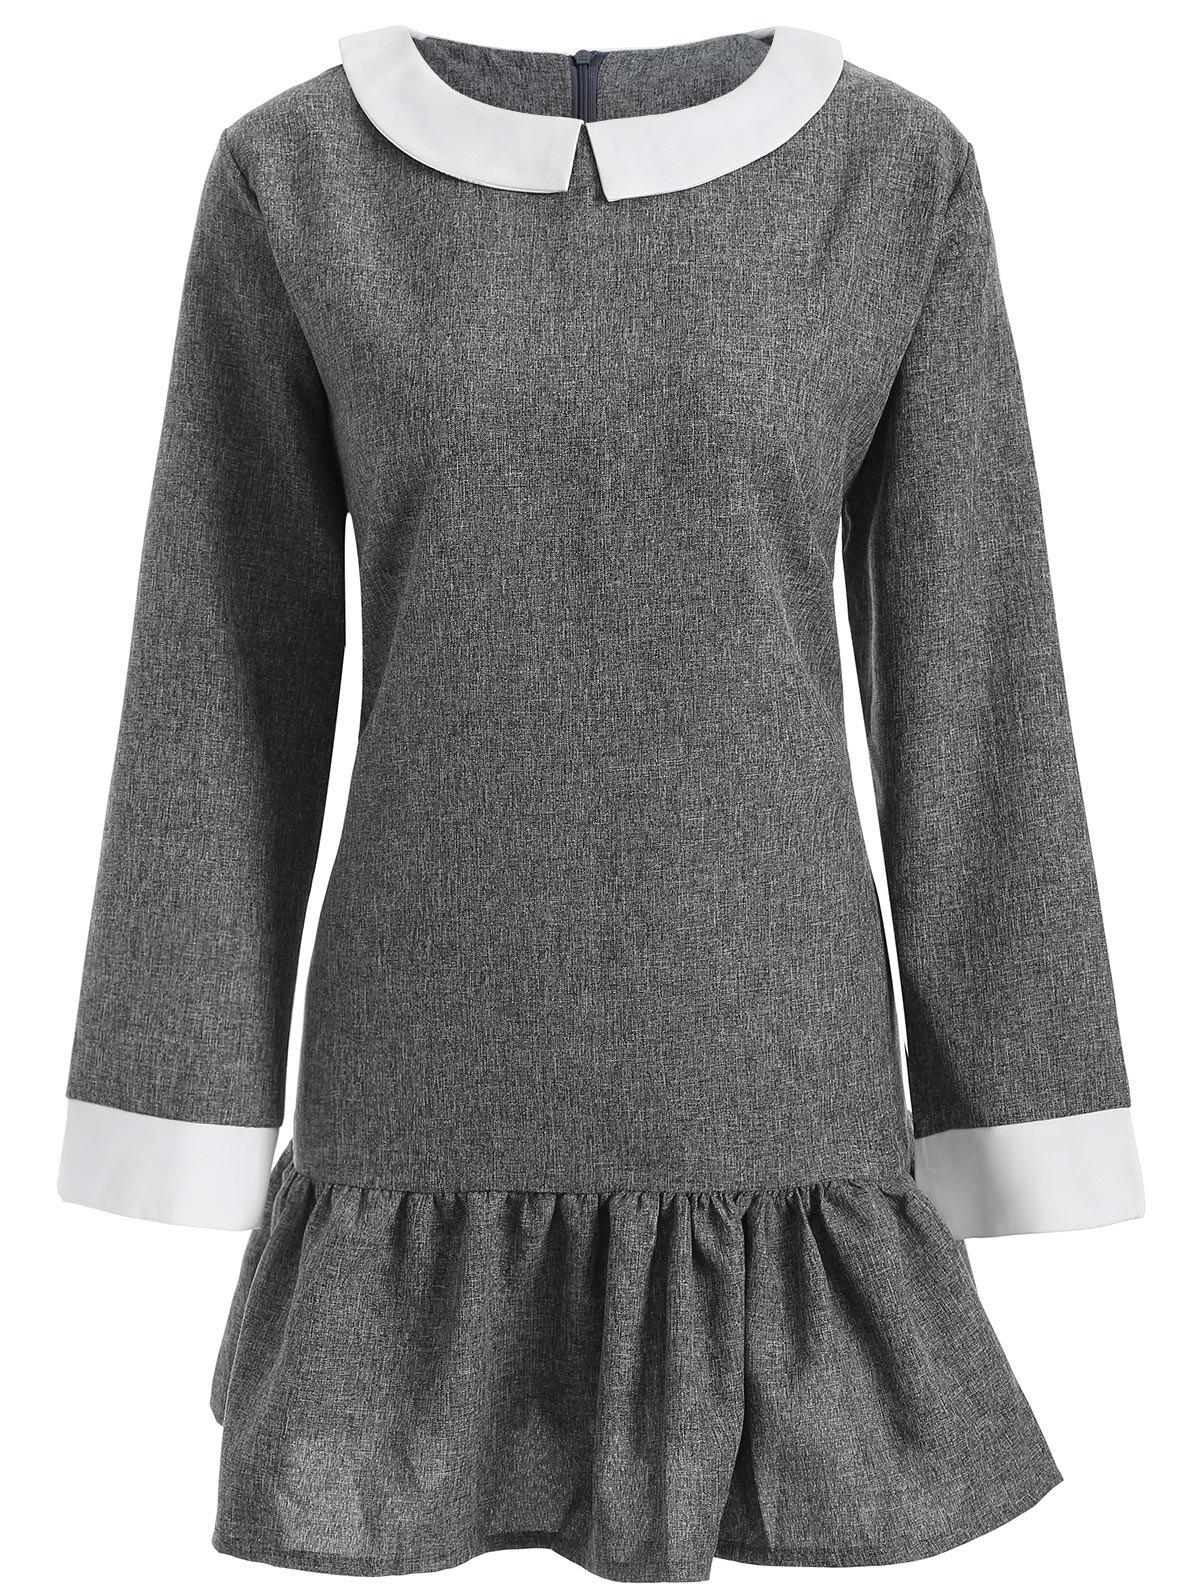 Plus Size Peter Pan Collar Dress - GRAY 5XL